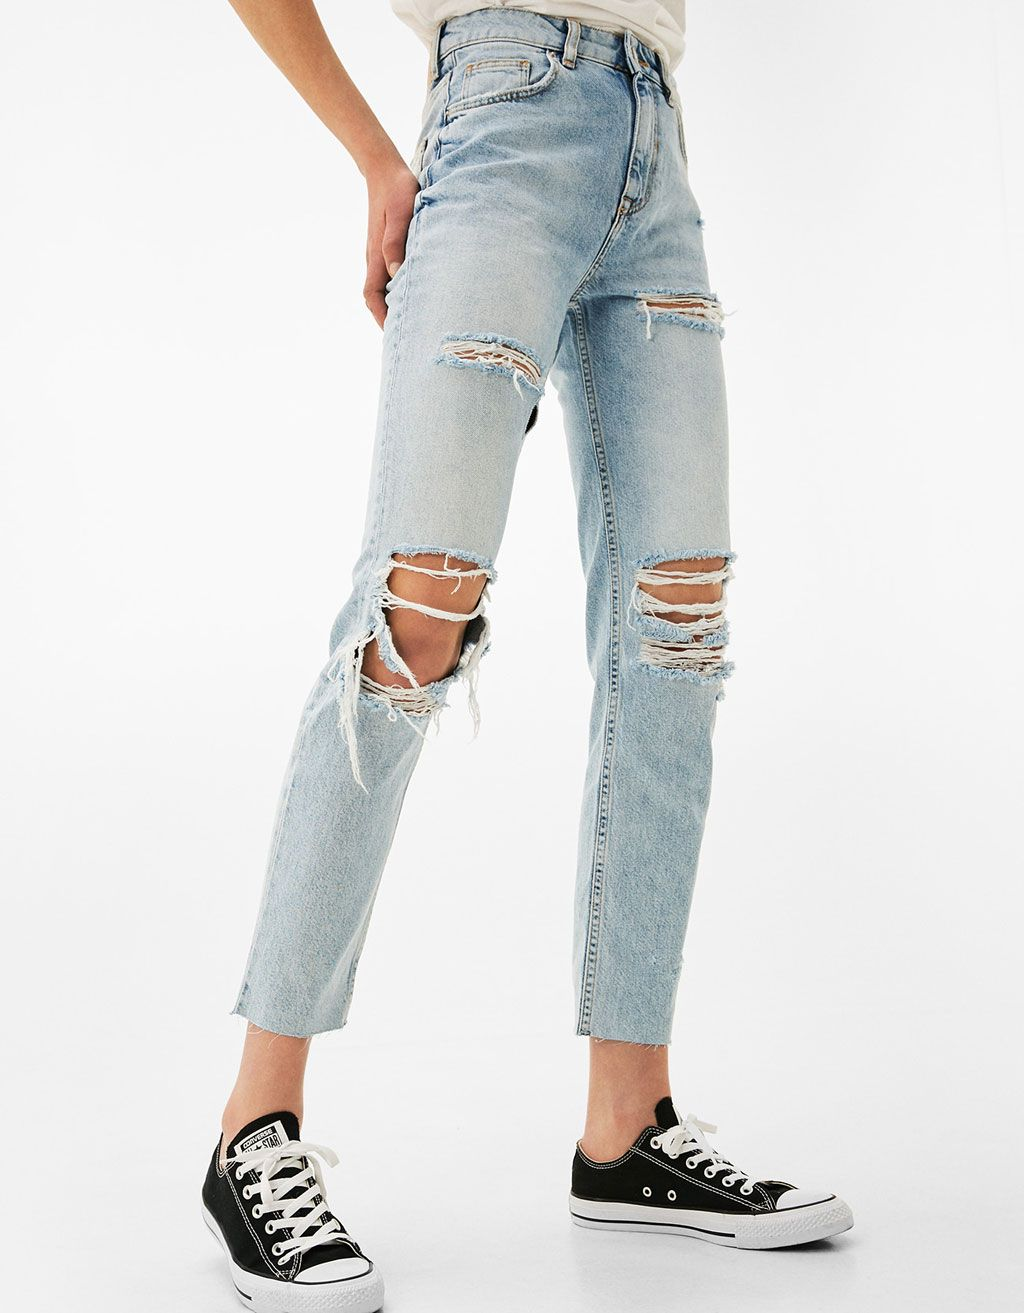 0ce370e7fcf0a3 Mom Fit jeans with ripped knees - Jeans - Bershka Israel